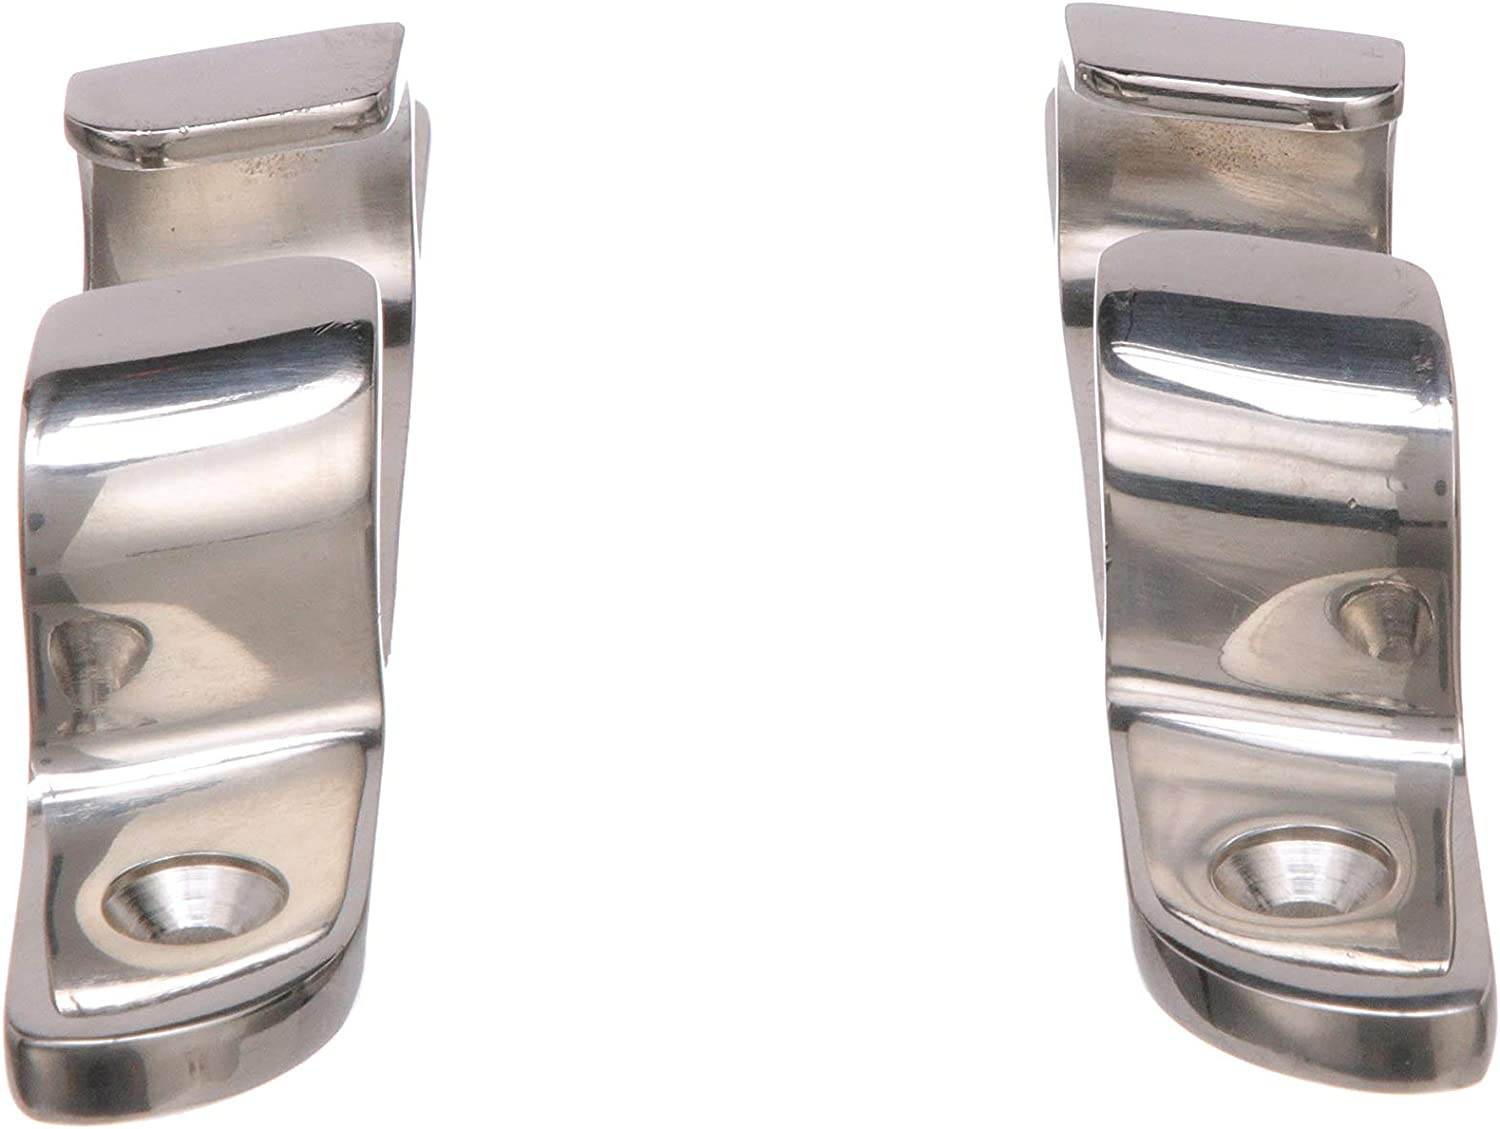 Seachoice 31251 Bow Chocks Accept Up to 5//8 Inch Line Pack of 2 Polished 316 Stainless Steel 4-3//4 Inches Long